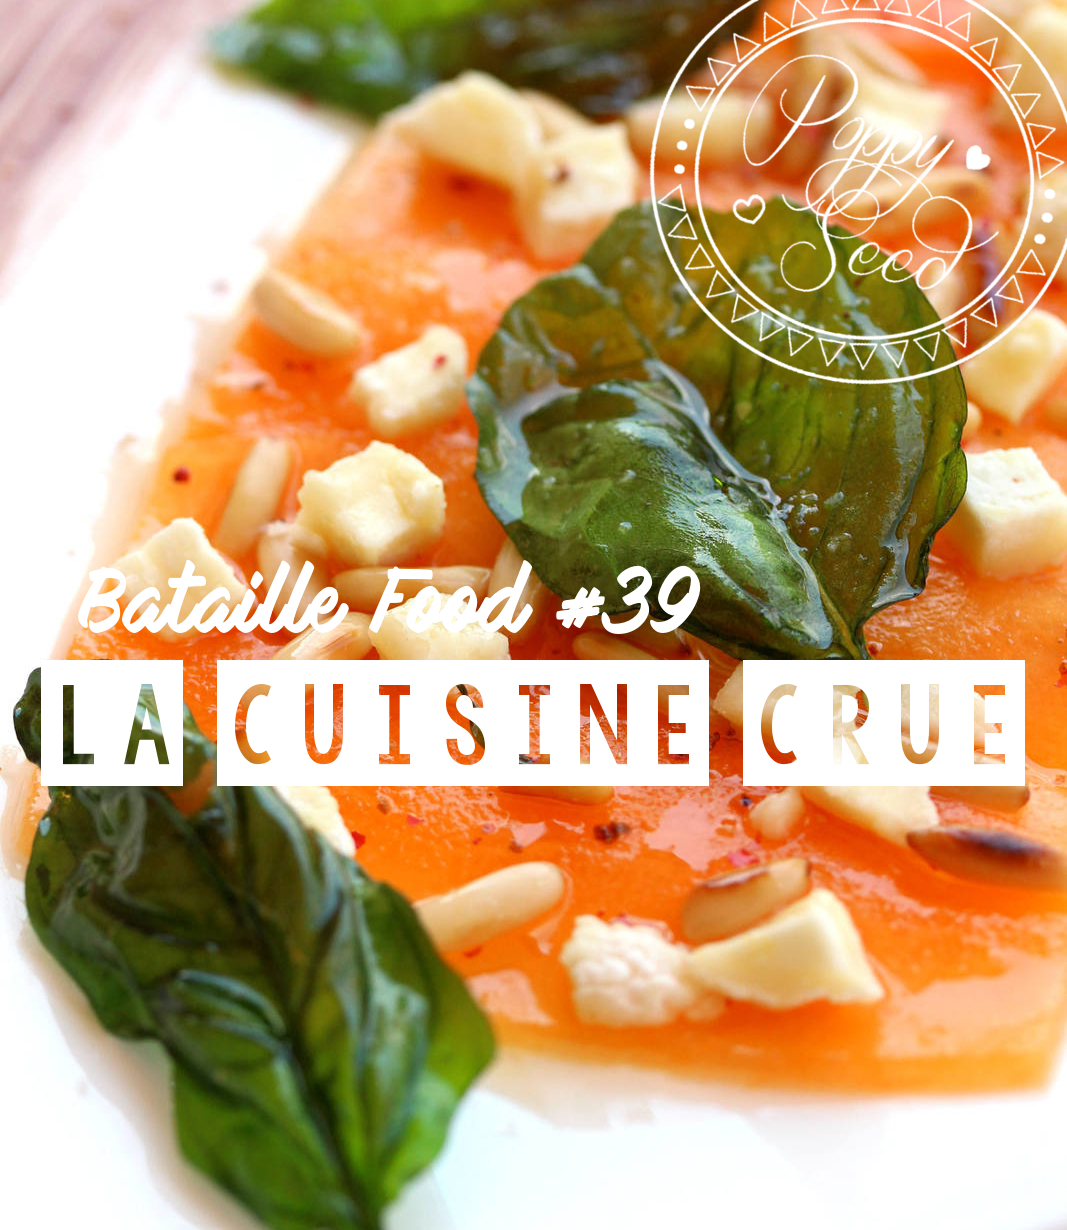 bataille-food-39-6